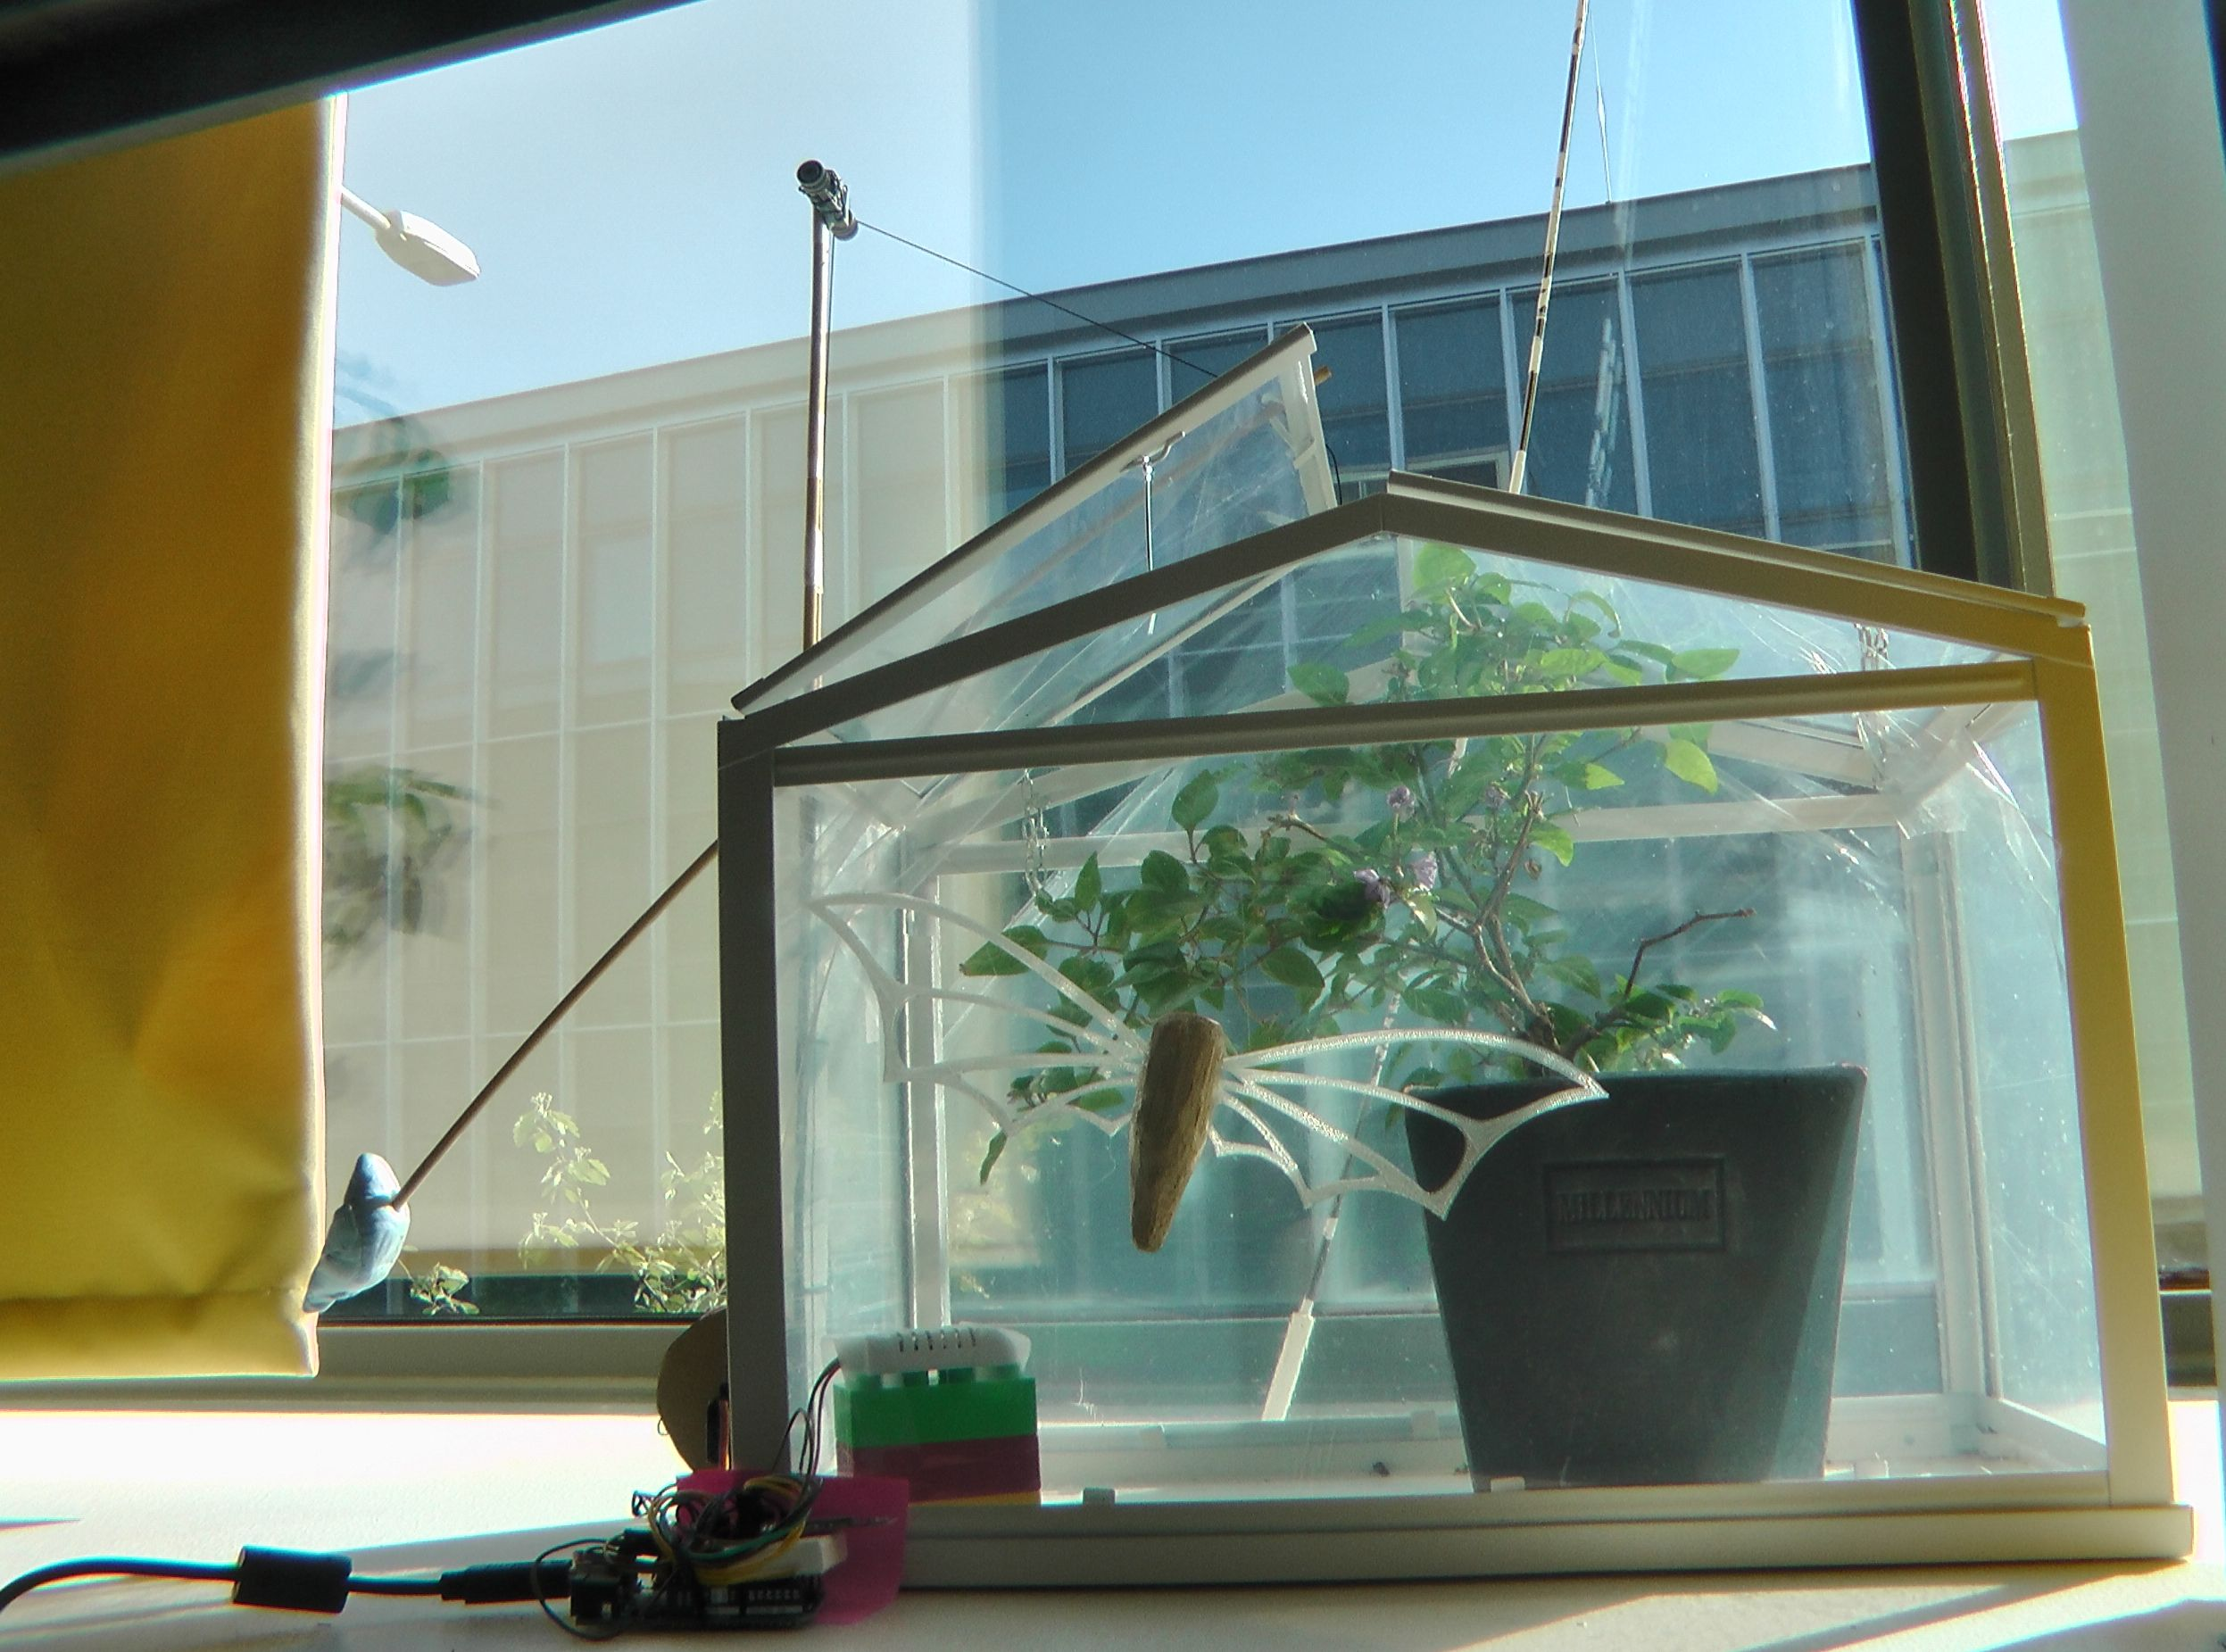 Used Auto Glass >> Internet of Things: Auto Ventilation System | Exact Greenhouse – Welcome to the lab